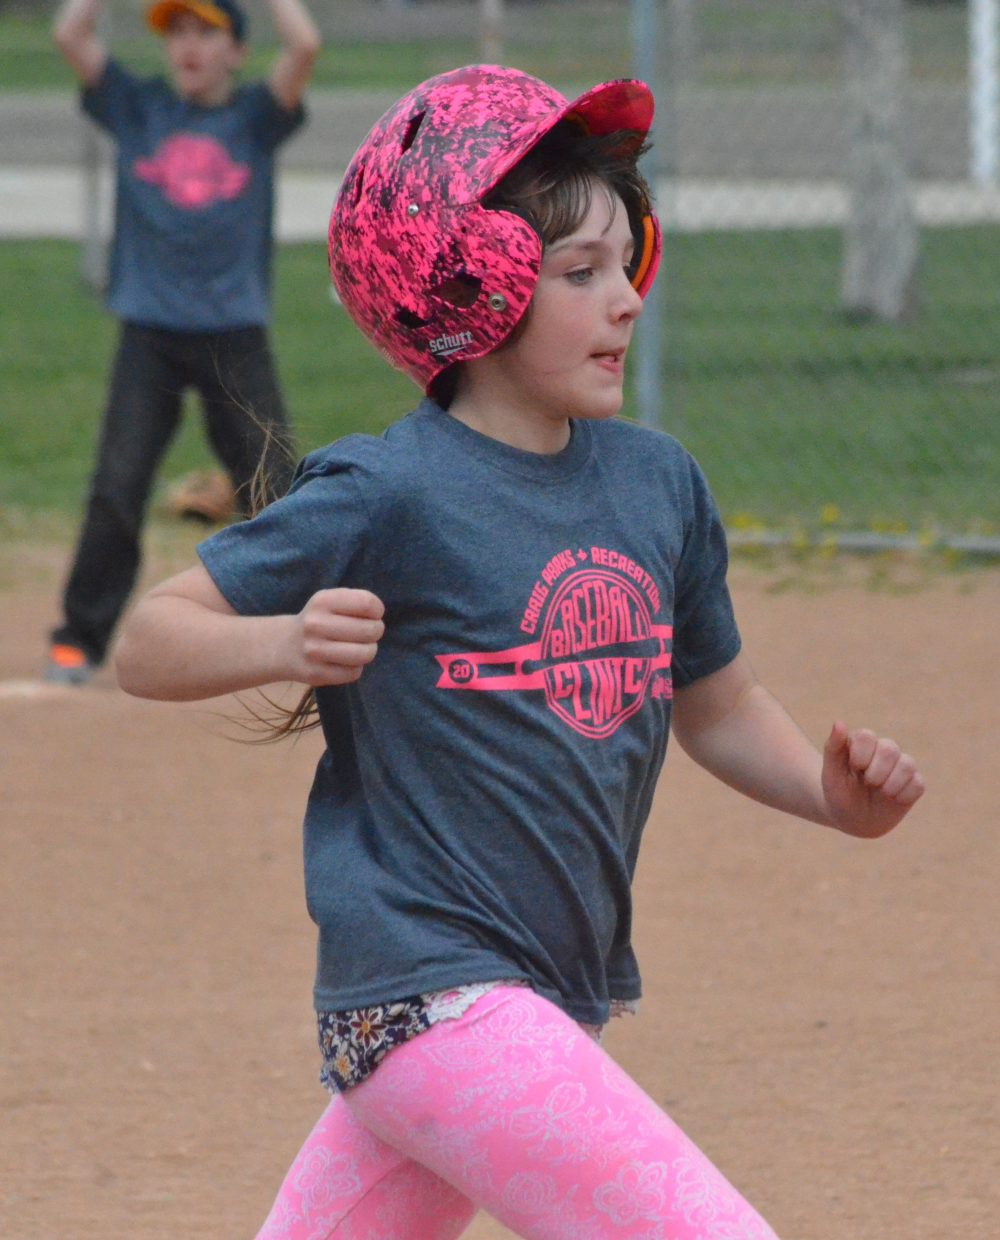 Joslyn Curtis hustles to third base during the Spartan Baseball Clinic